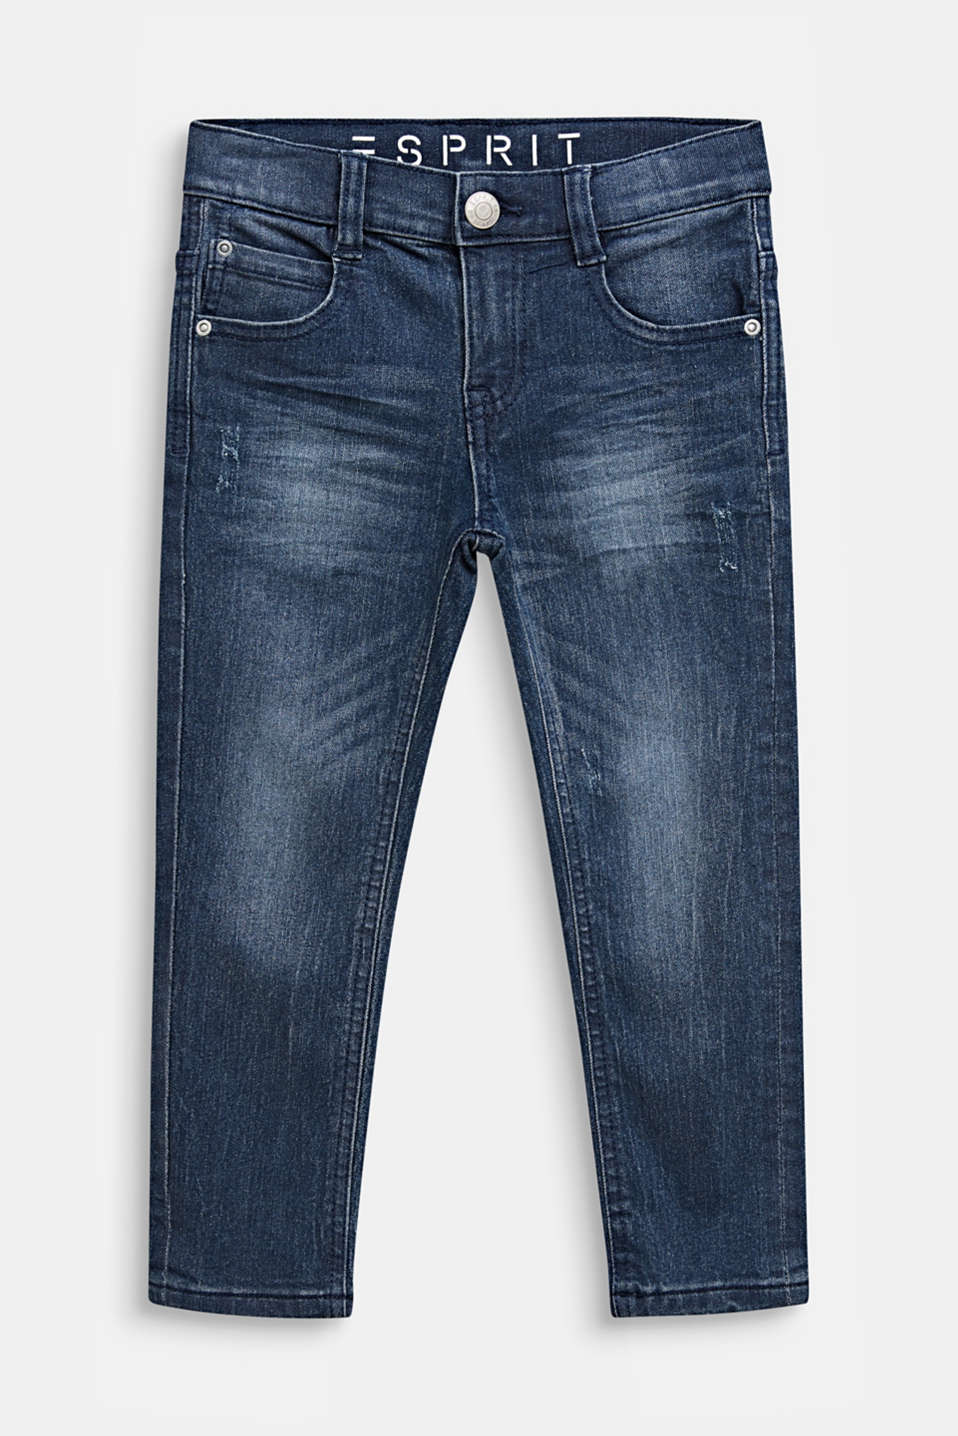 Esprit - Stretch-Jeans im Vintage-Look